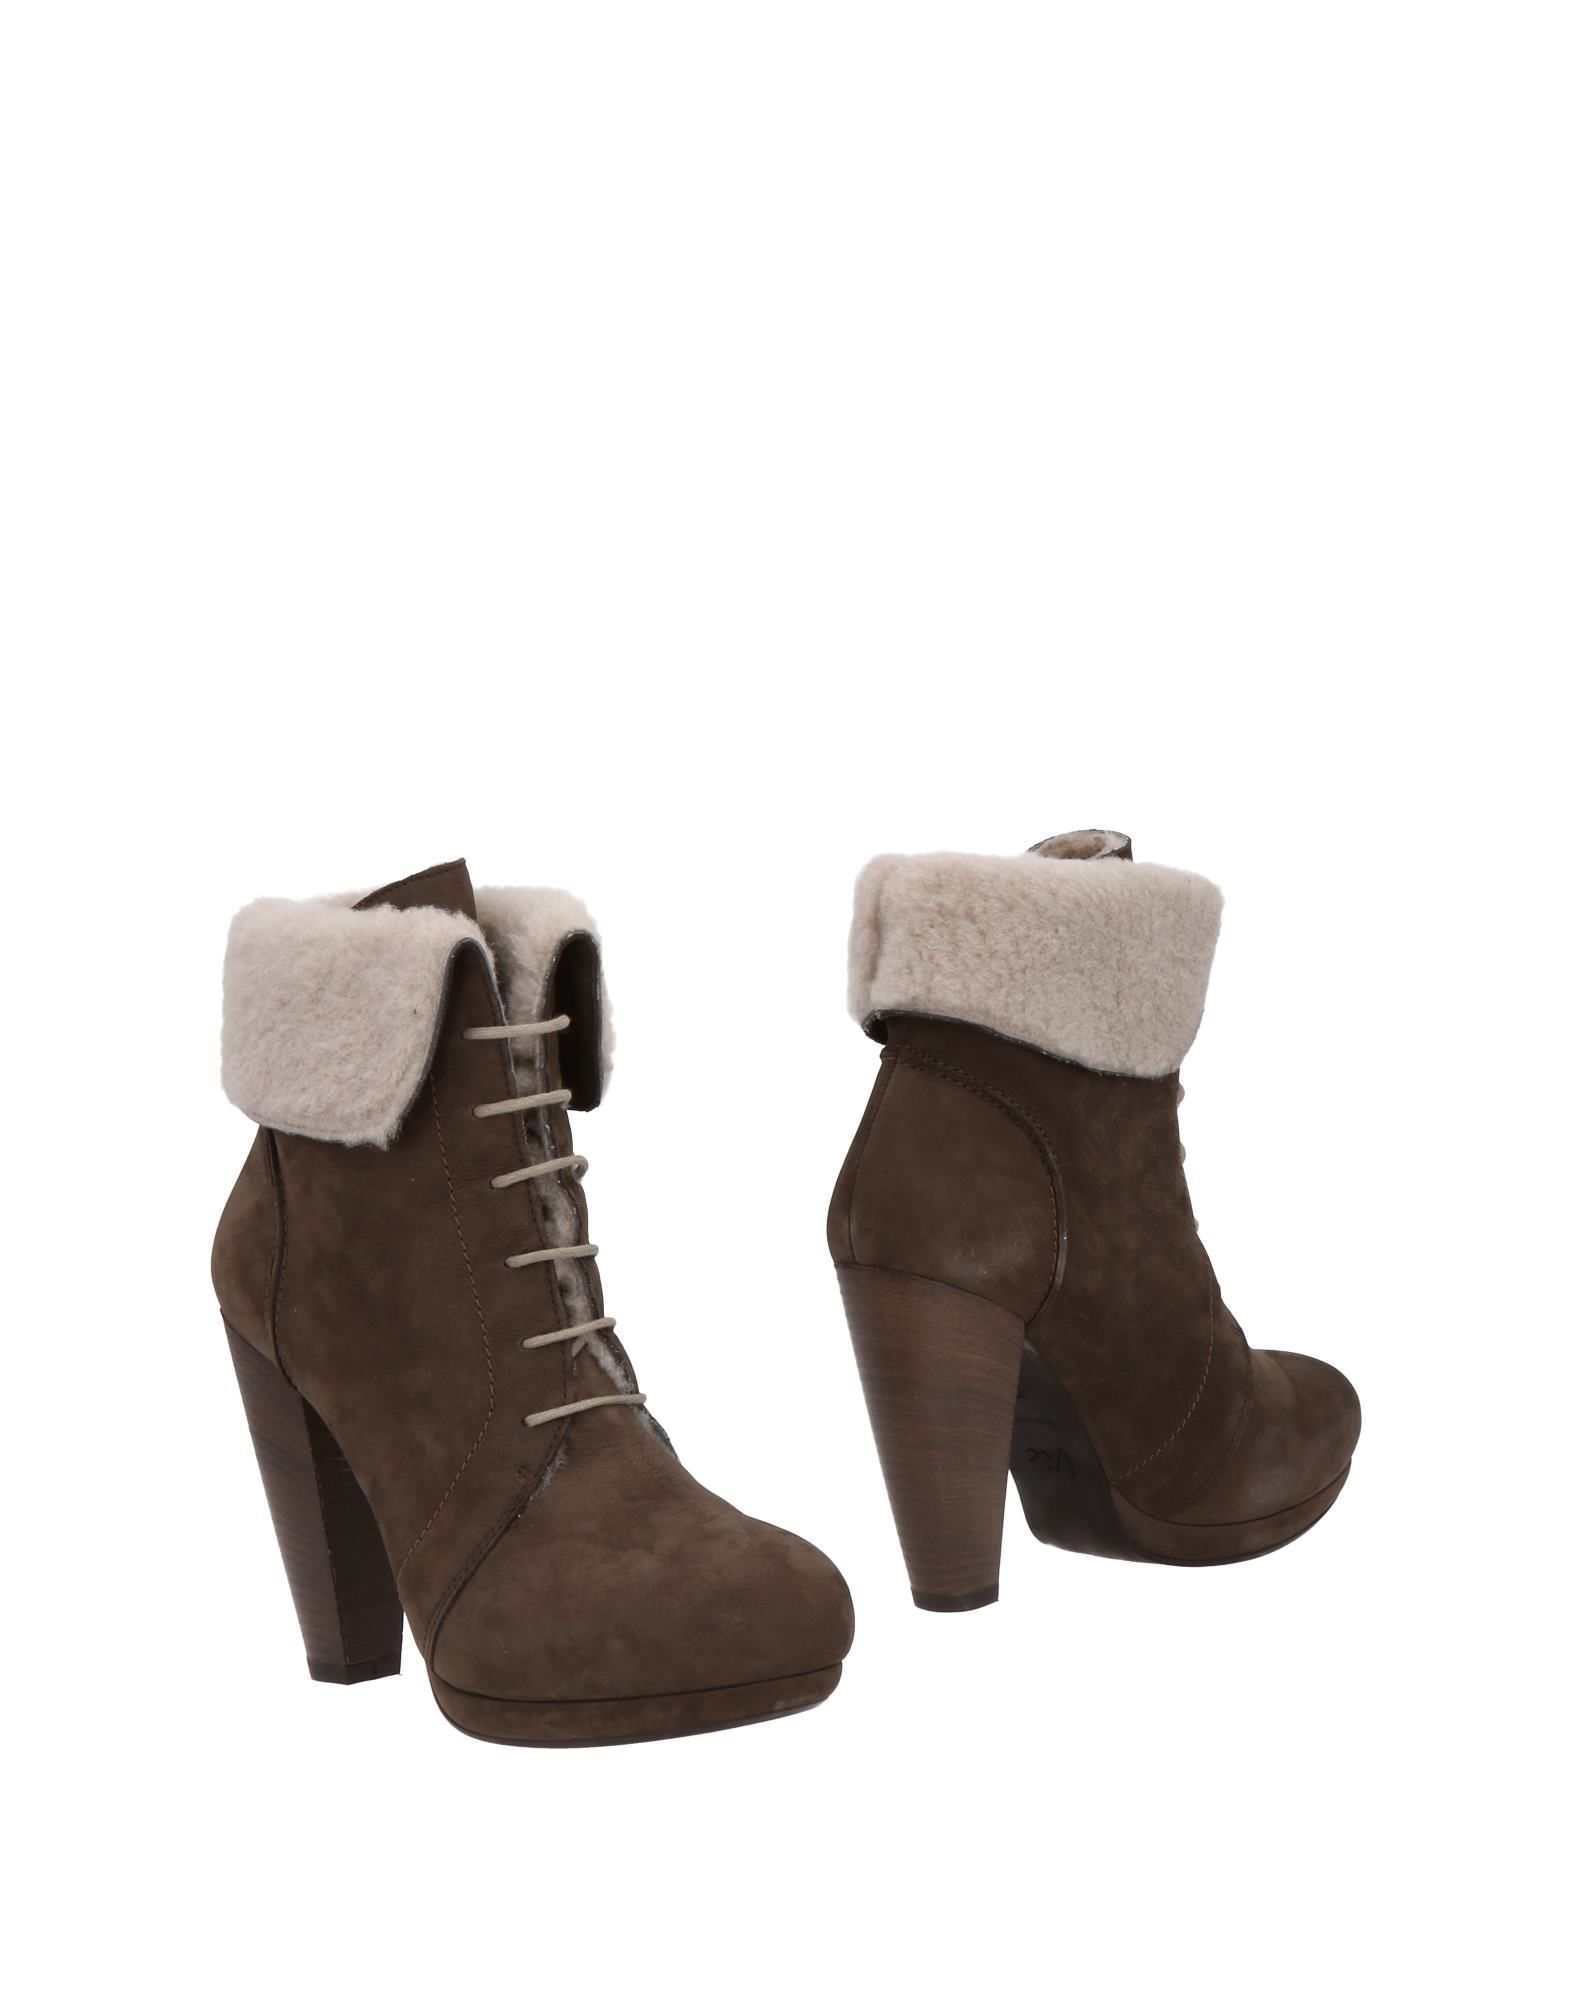 VIC Ankle Boot in Cocoa